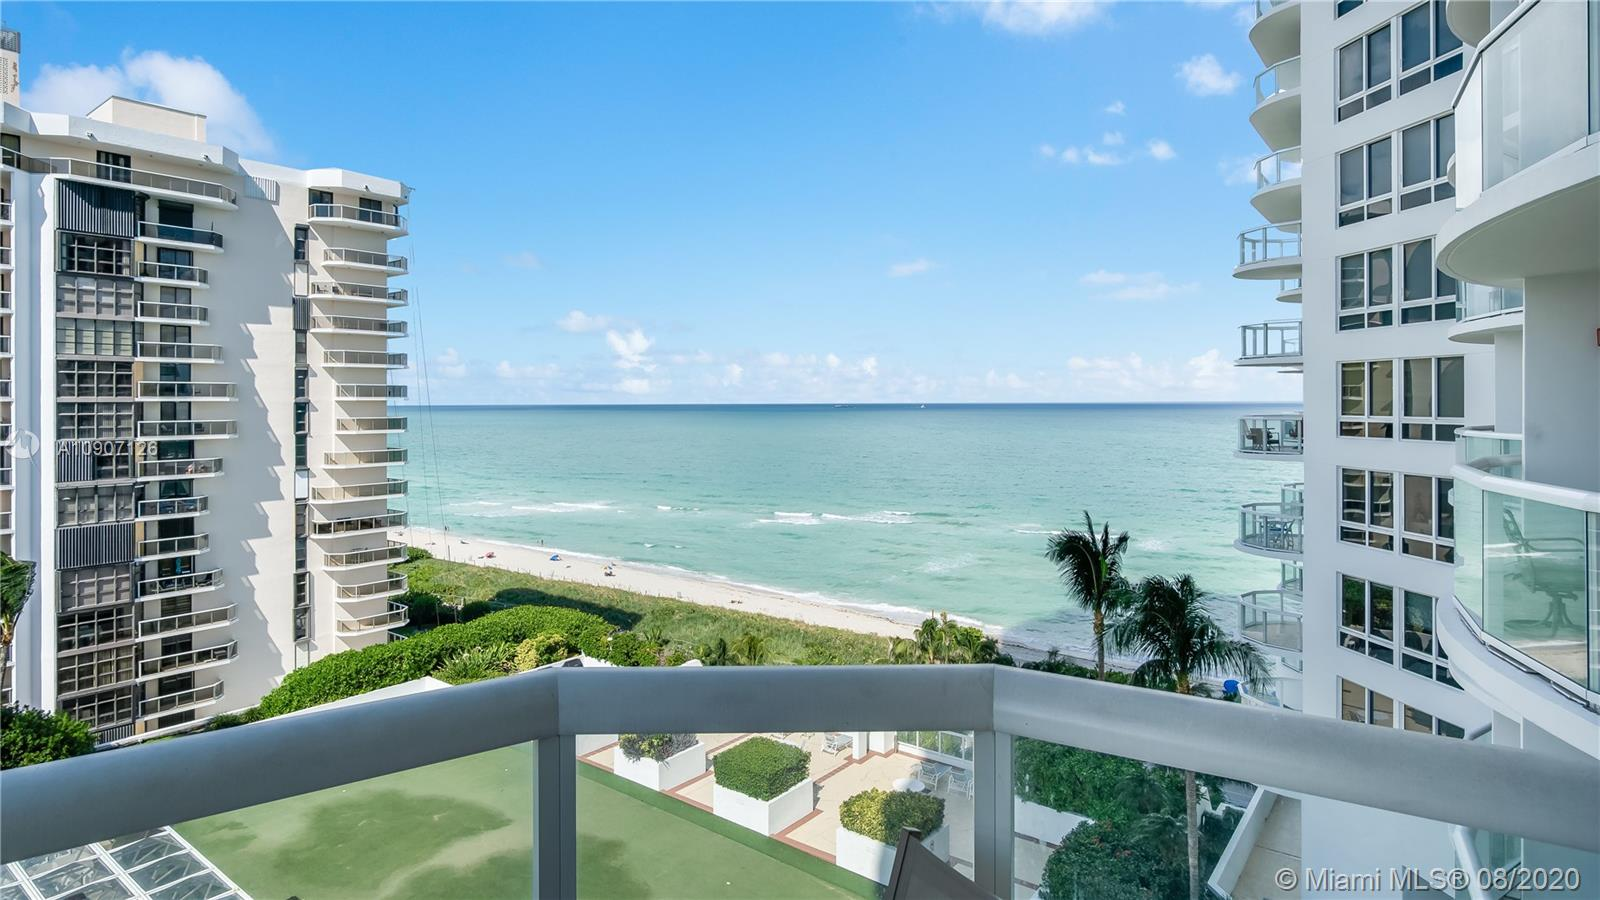 ***OCEAN AND BAY VIEW FROM EVERY ROOM*** AMAZING SUNSET VIEWS. THIS FULLY REMODELED UNIT HAS 2 BALCONIES, SPLIT BEDROOM FLOOR PLAN, LARGE LIVING ROOM WITH PANORAMIC FLOOR TO CEILING WINDOWS. FURNITURE INCLUDED TO THE PRICE. PERFECT FOR INVESTORS AND/OR AS A VACATION HOME, CAN BE RENTED 12 TIMES A YEAR, MINIMUM 30 DAYS.